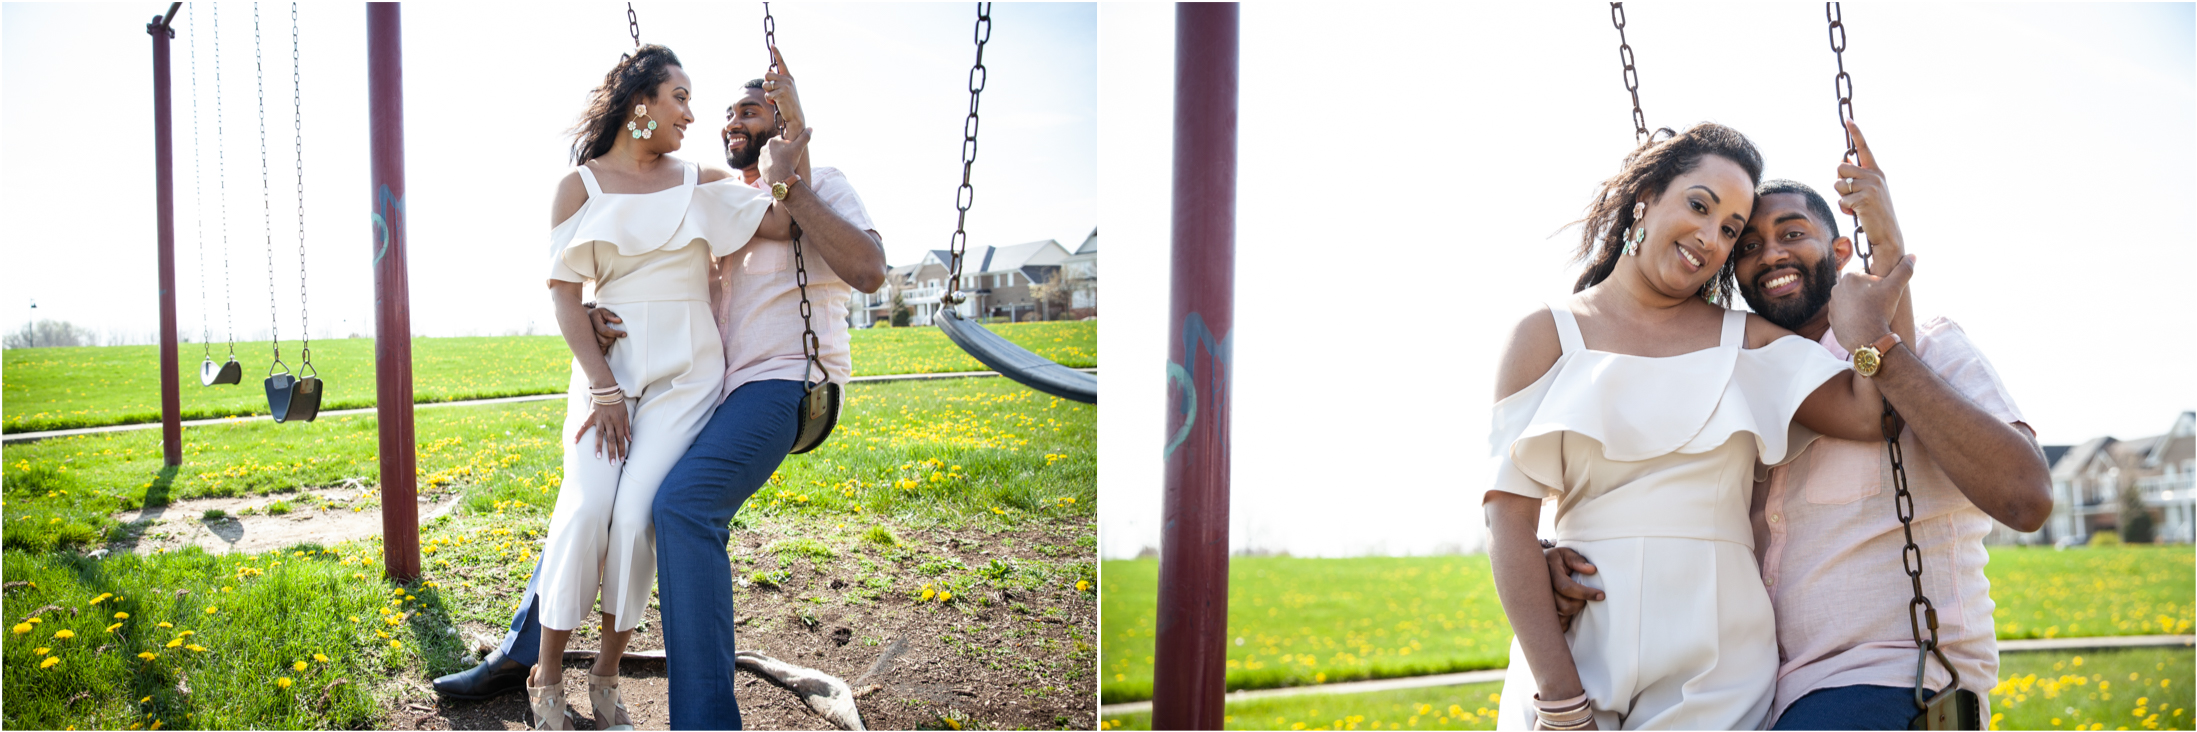 Engagement photo of a couple on the playground swing set